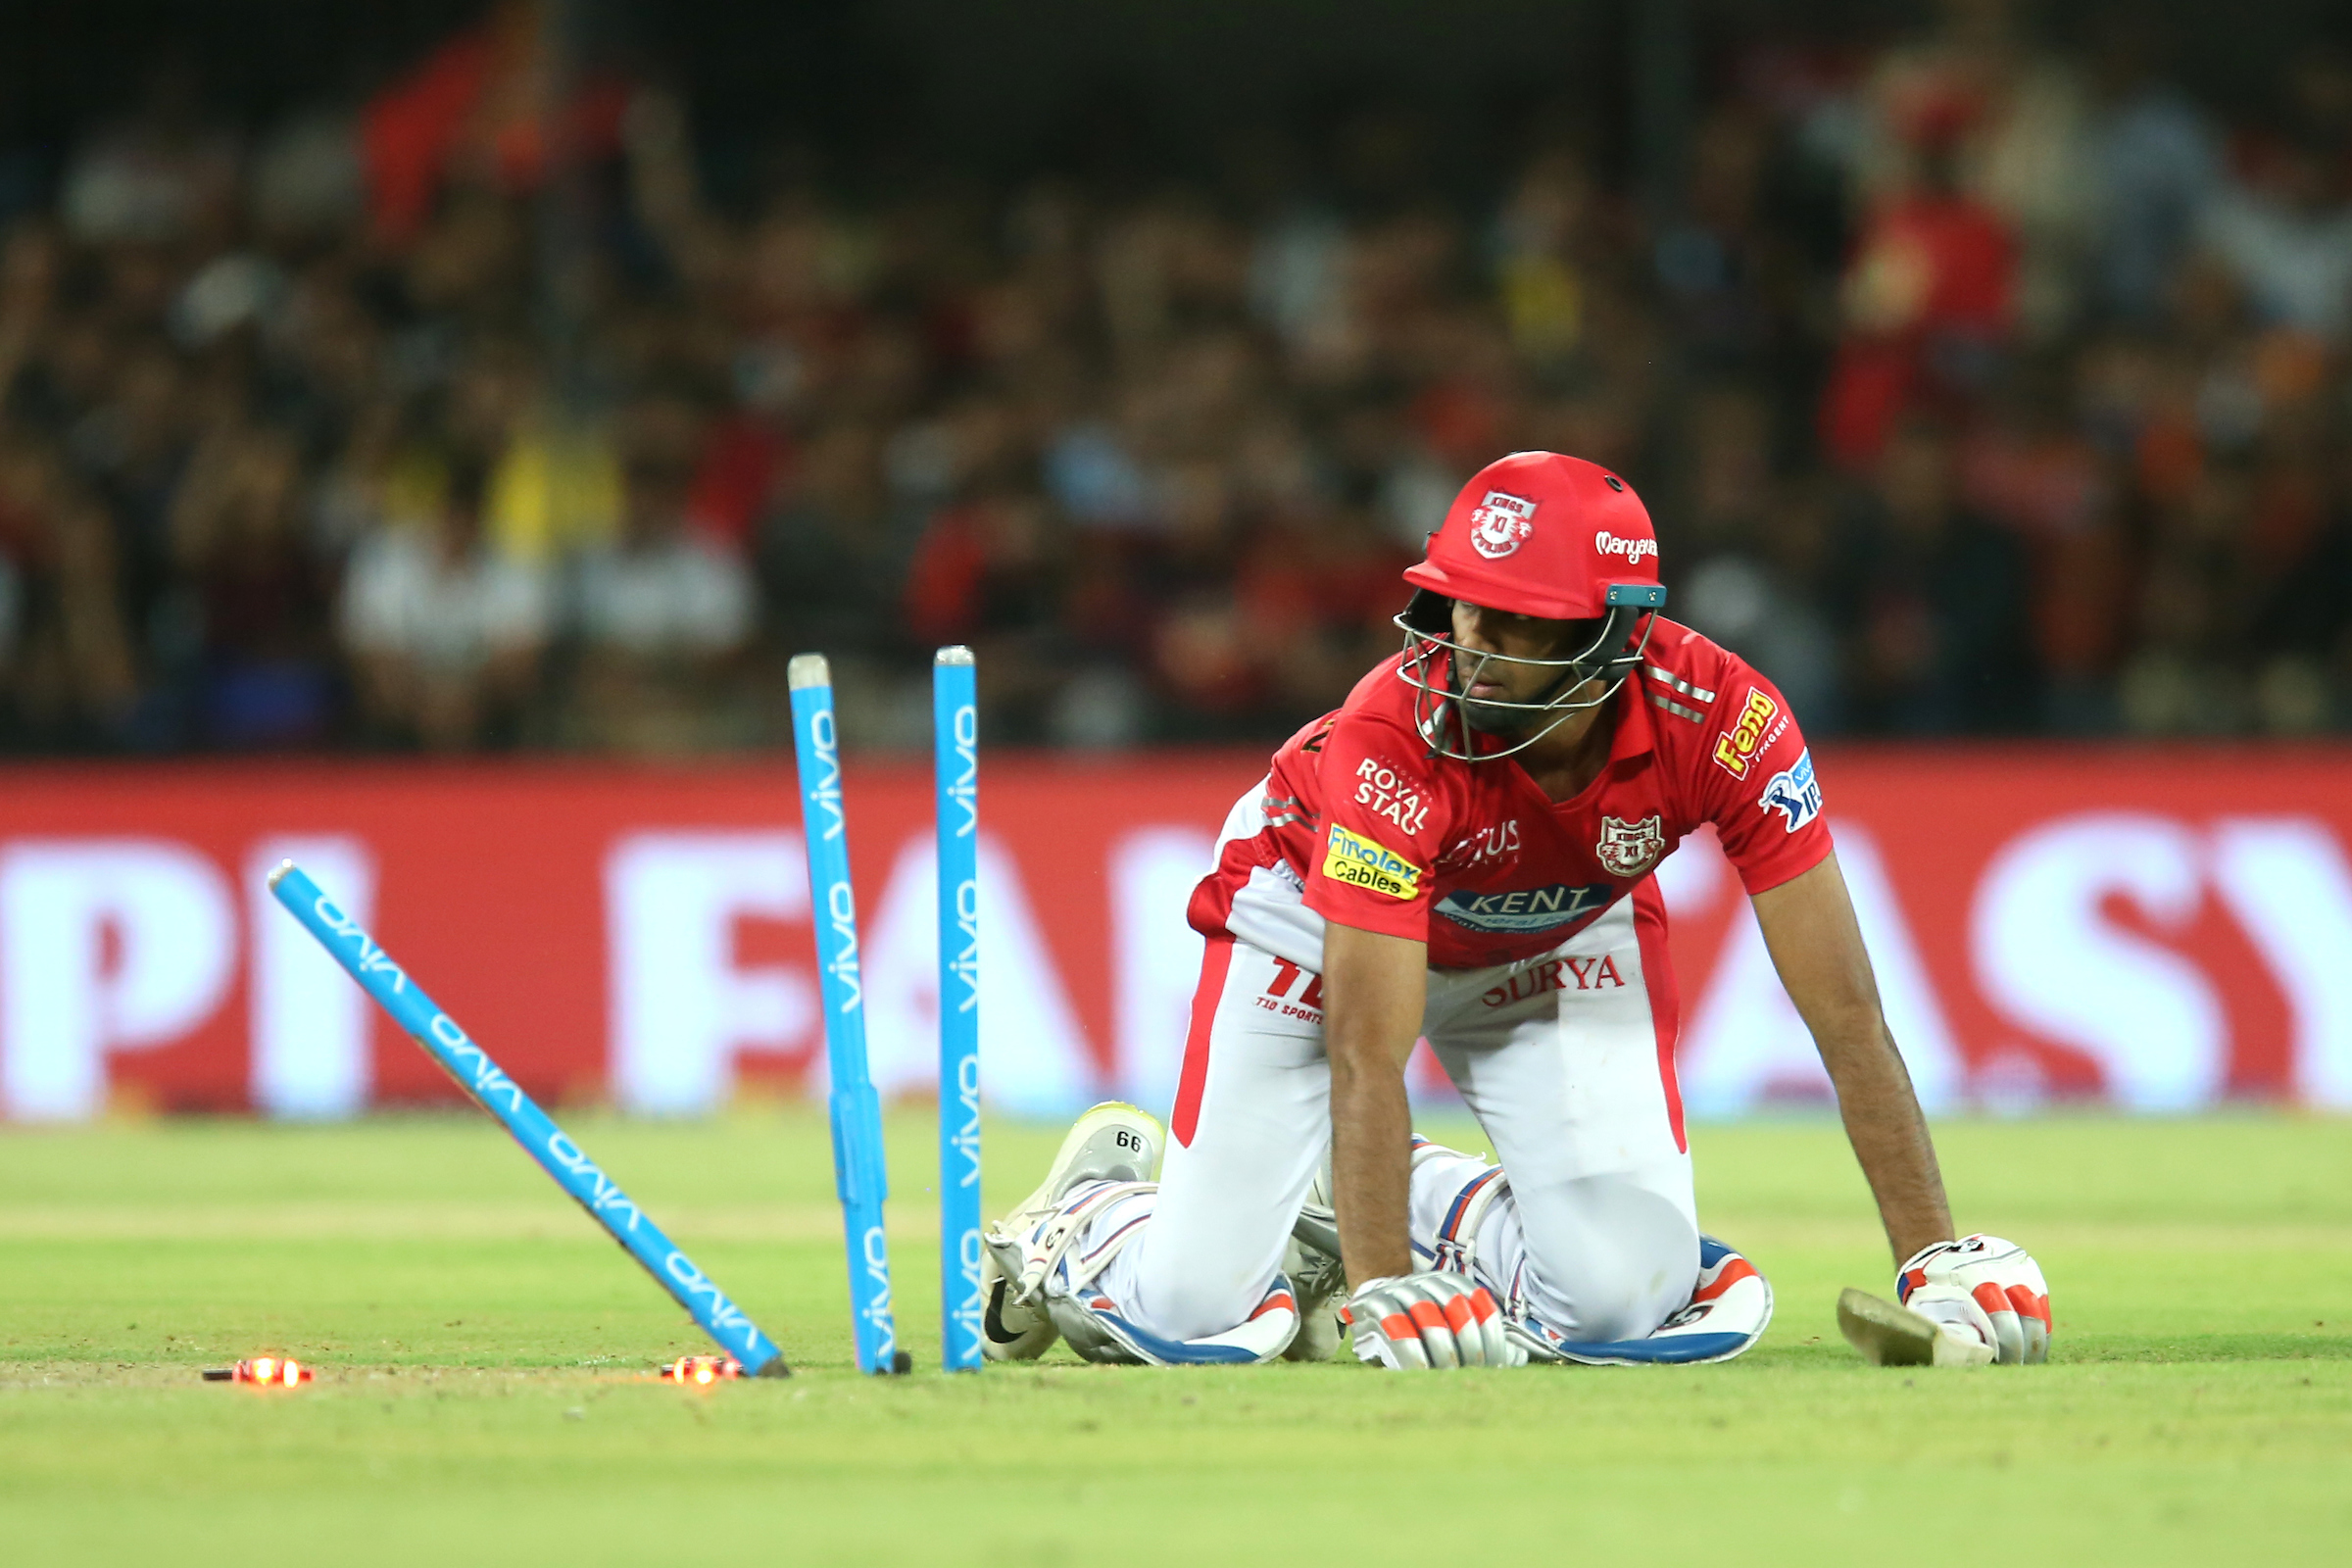 R Ashwin was one of three KXIP batters who ran themselves out (Image: Sportzpics/BCCI)